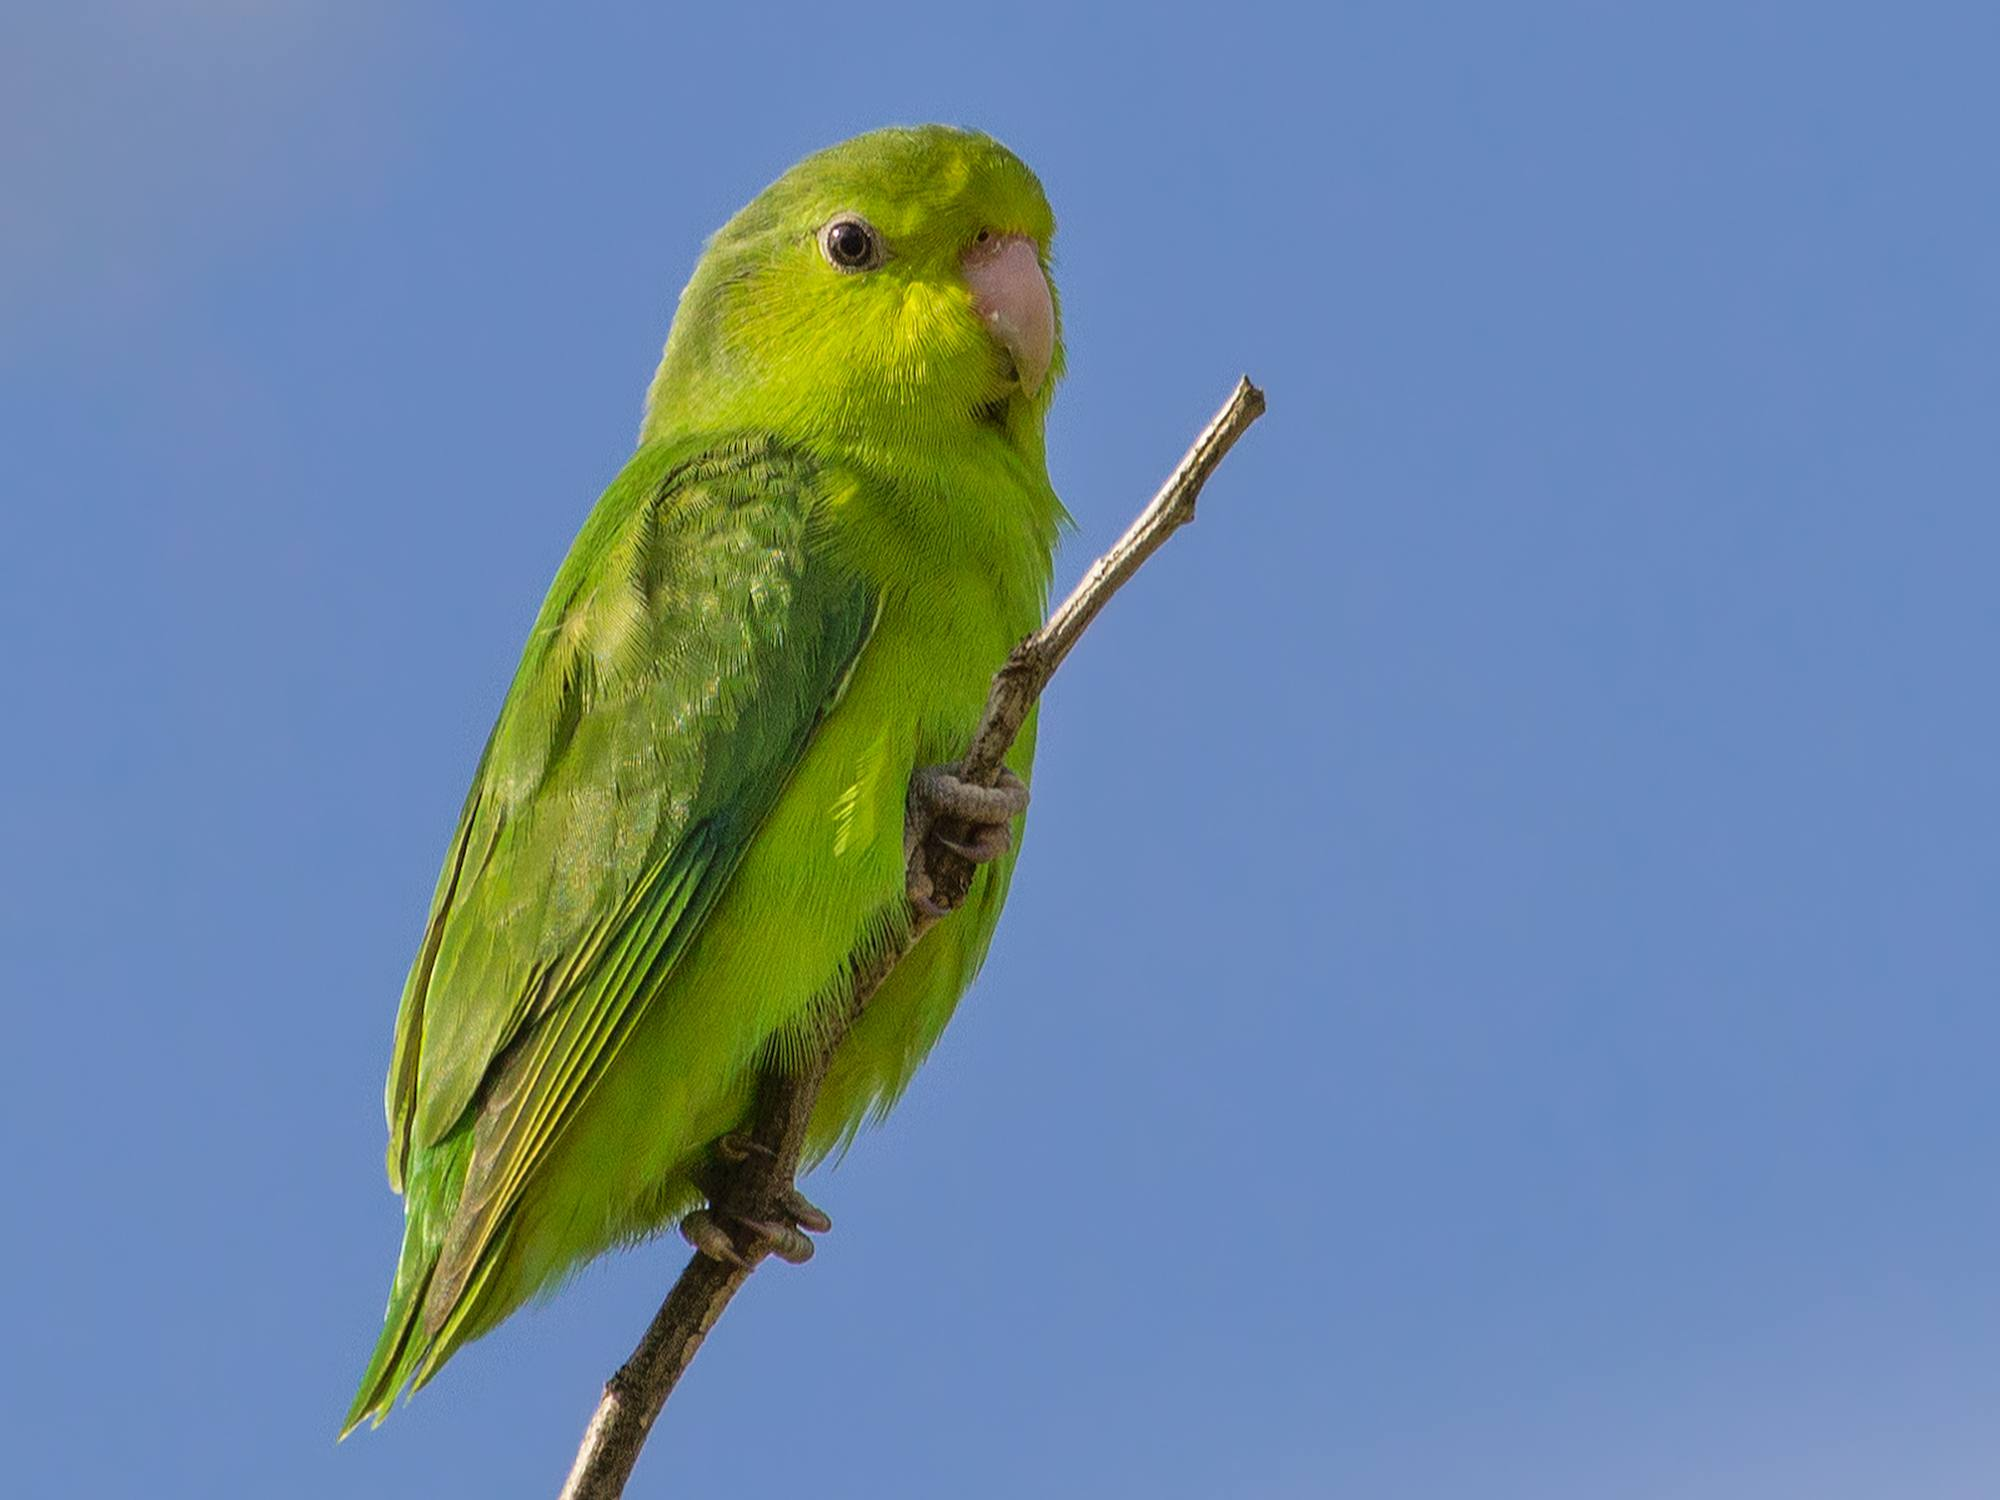 Green parrotlet standing on a branch near the tip